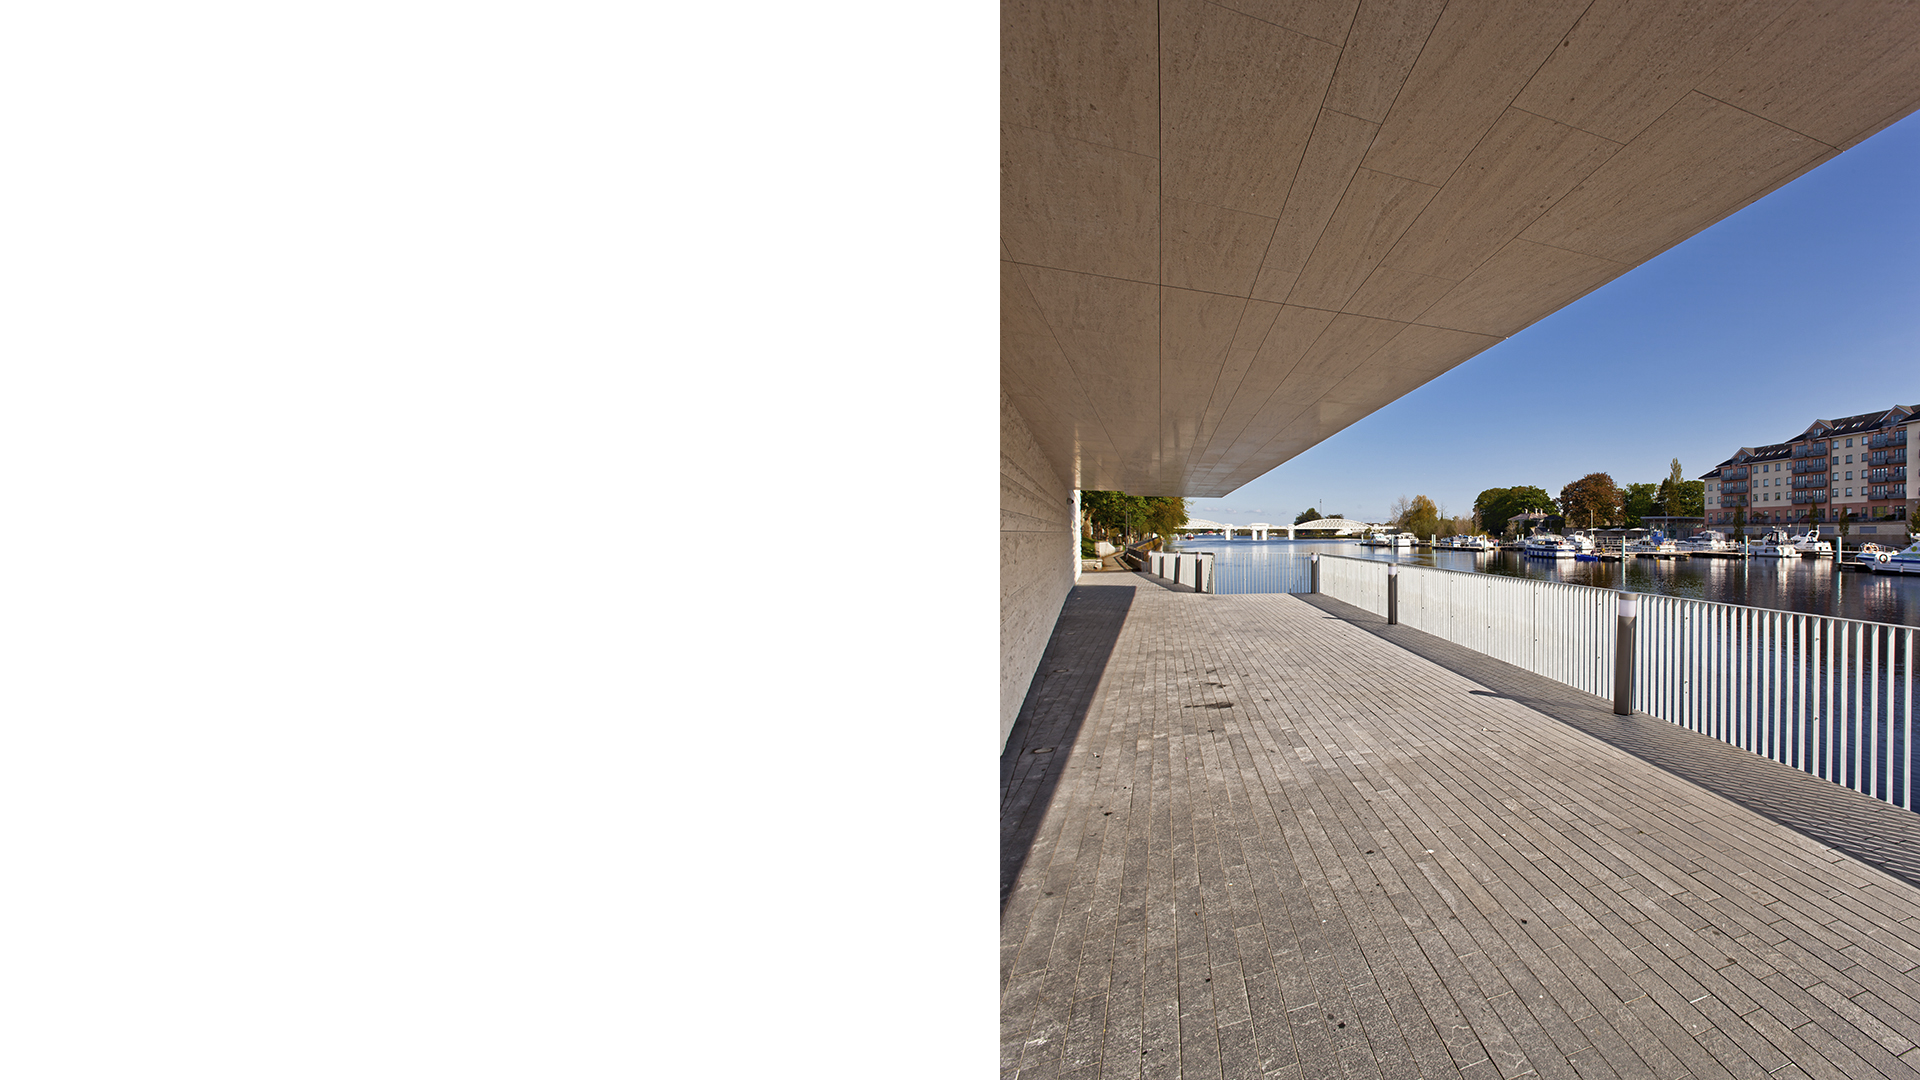 Detail of the gallery overhanging the new riverside walkway at the Luan Gallery, Athlone